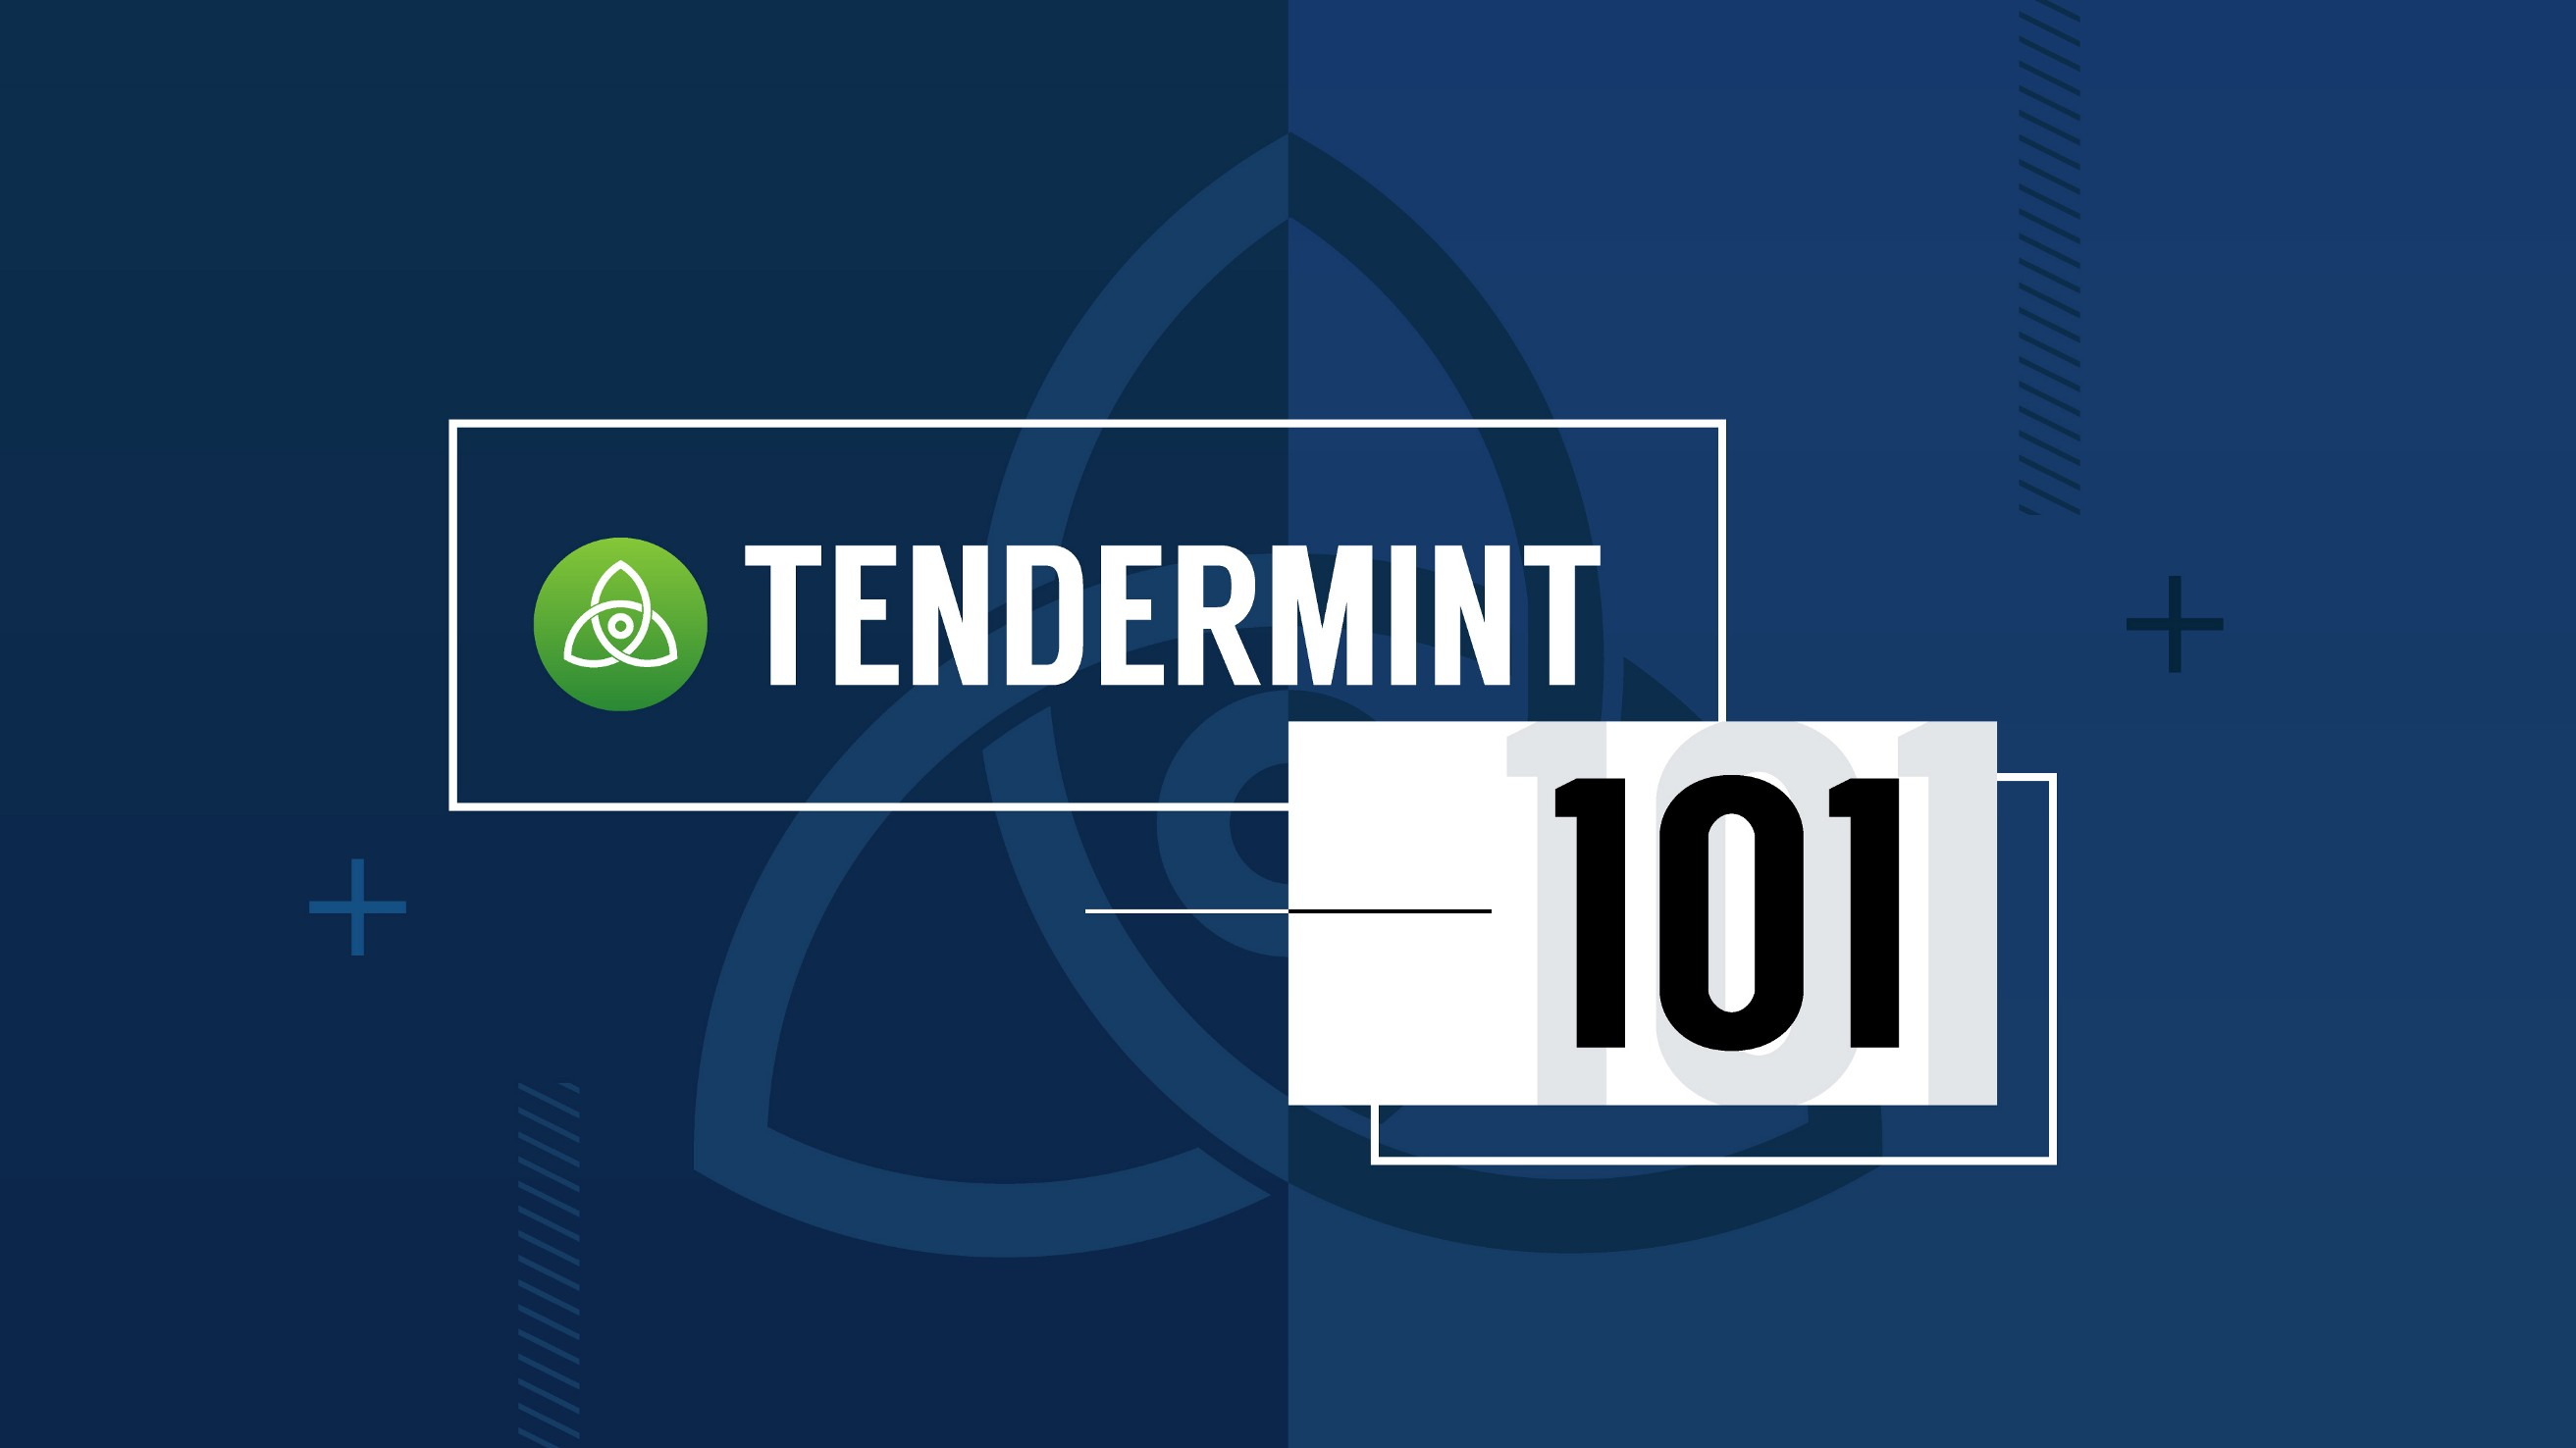 Tendermint Explained — Bringing BFT-based PoS to the Public